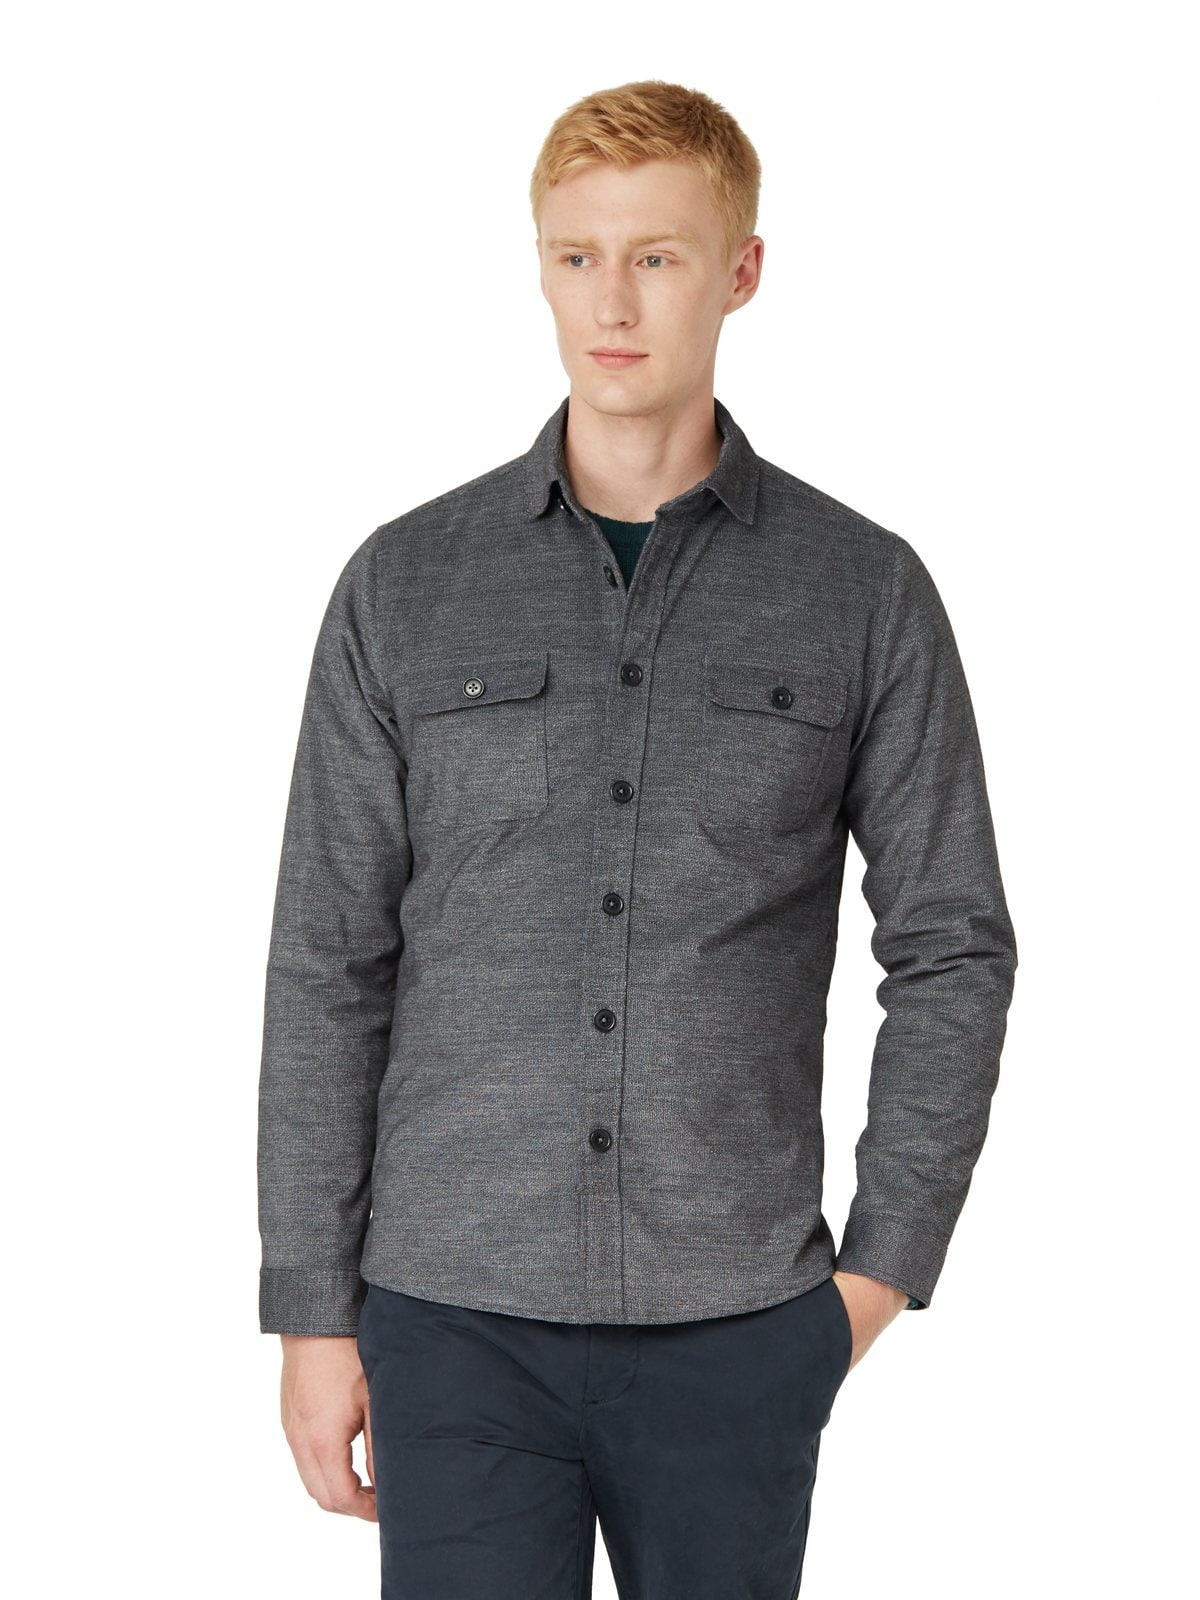 Lyst frank oak quilted corduroy overshirt in charcoal for Frank and oak shirt